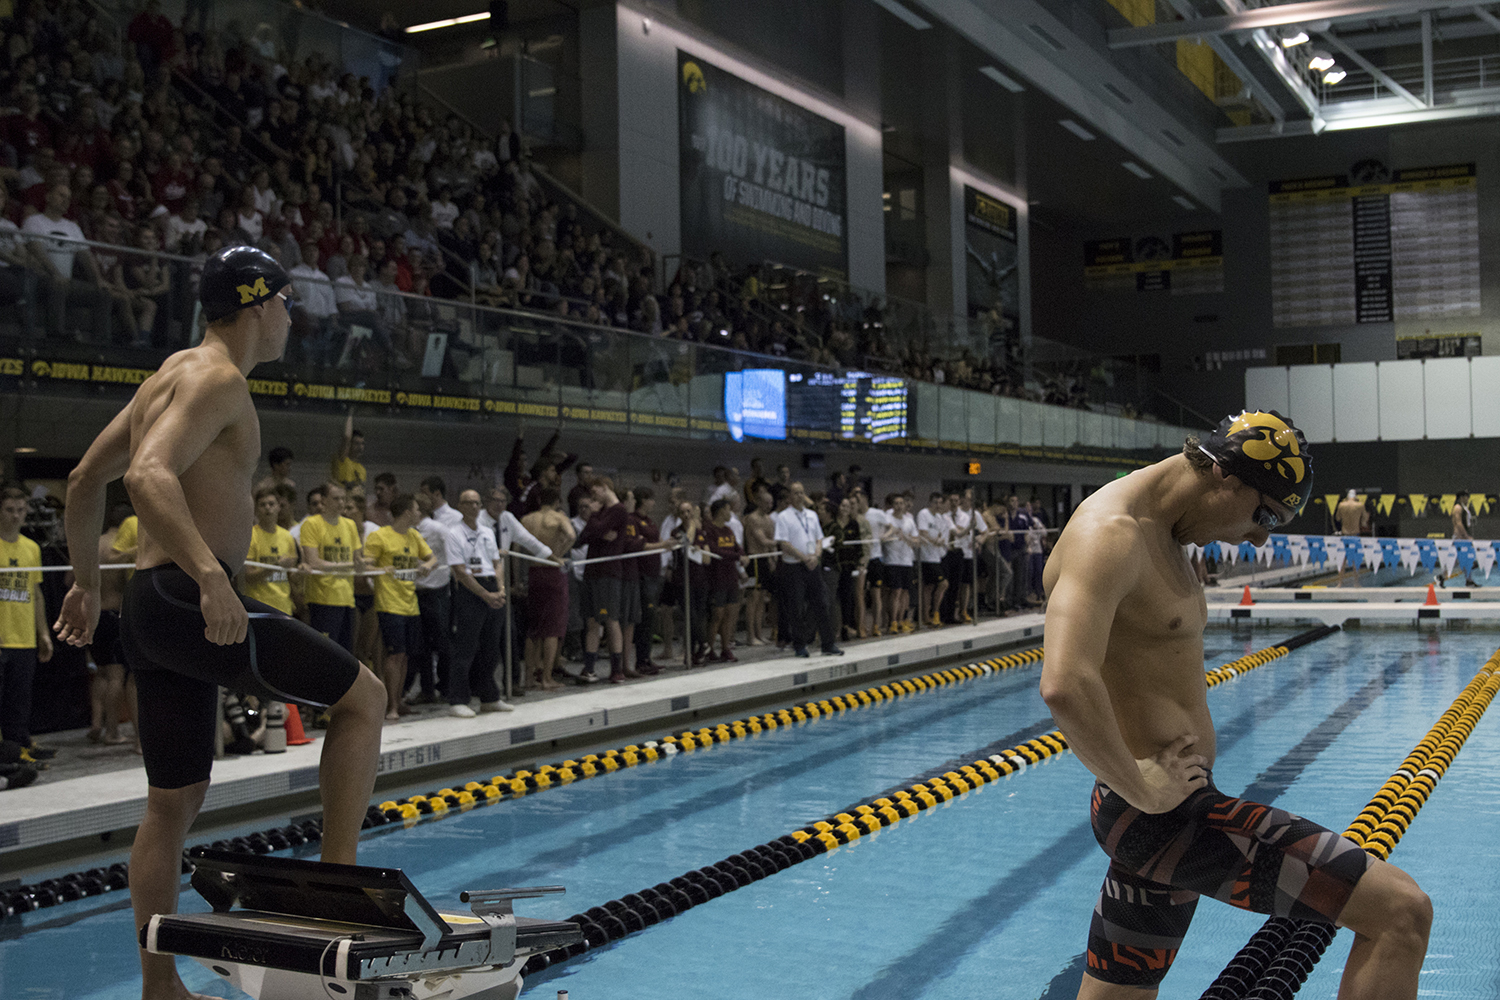 Dani+Swanepoel+from+the+University+of+Iowa+and+William+Chan+from+the+University+of+Michigan+step+up+to+the+starting+blocks+for+the+Men%27s+200+yard+breaststroke+consolation+finals+during+the+final+day+of+the+2019+Big+Ten+Men%27s+Swimming+and+Diving+Championships+at+the+CRWC+on+March+2%2C+2019.+Swanepoel+placed+fourth+with+a+time+of+1%3A55%3A51%2C+while+Chan+placed+eighth+with+a+time+of+2%3A00%3A04.+